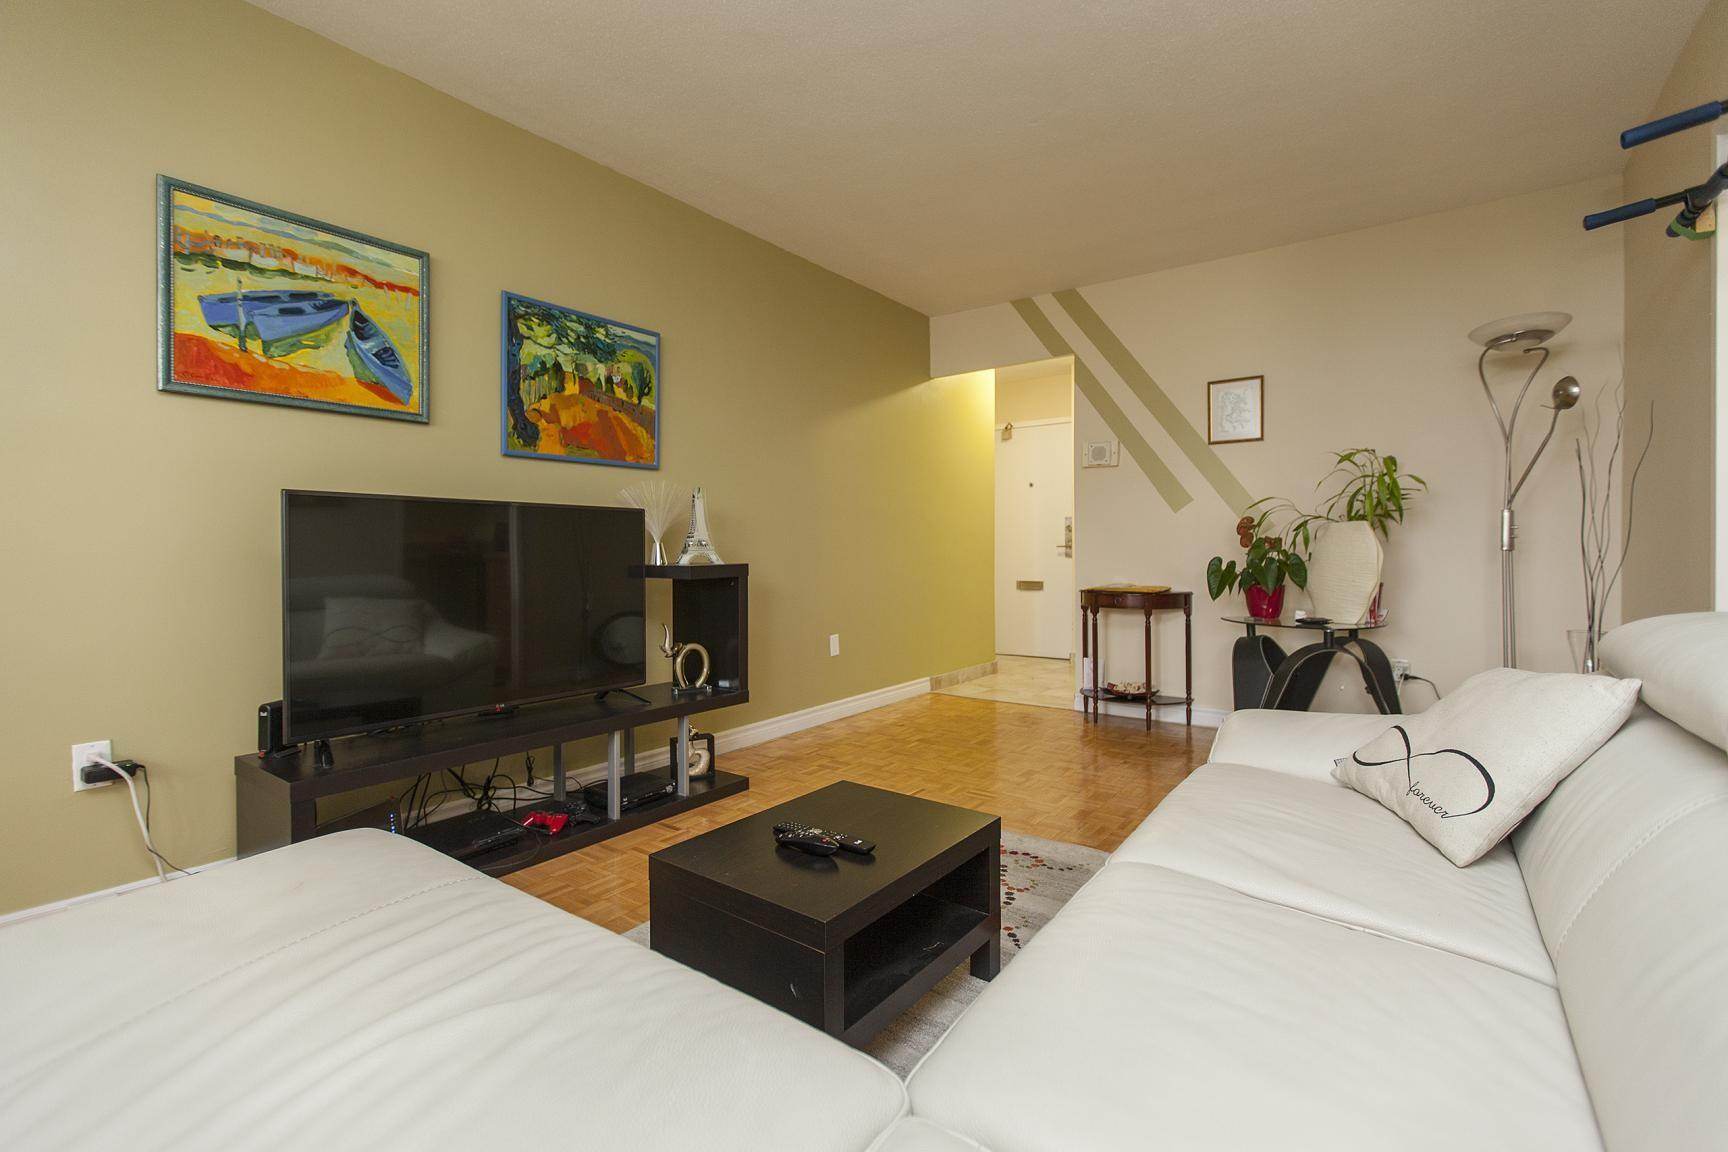 110 erskine avenue apartments is a 12 minute walk from the 1 line 1